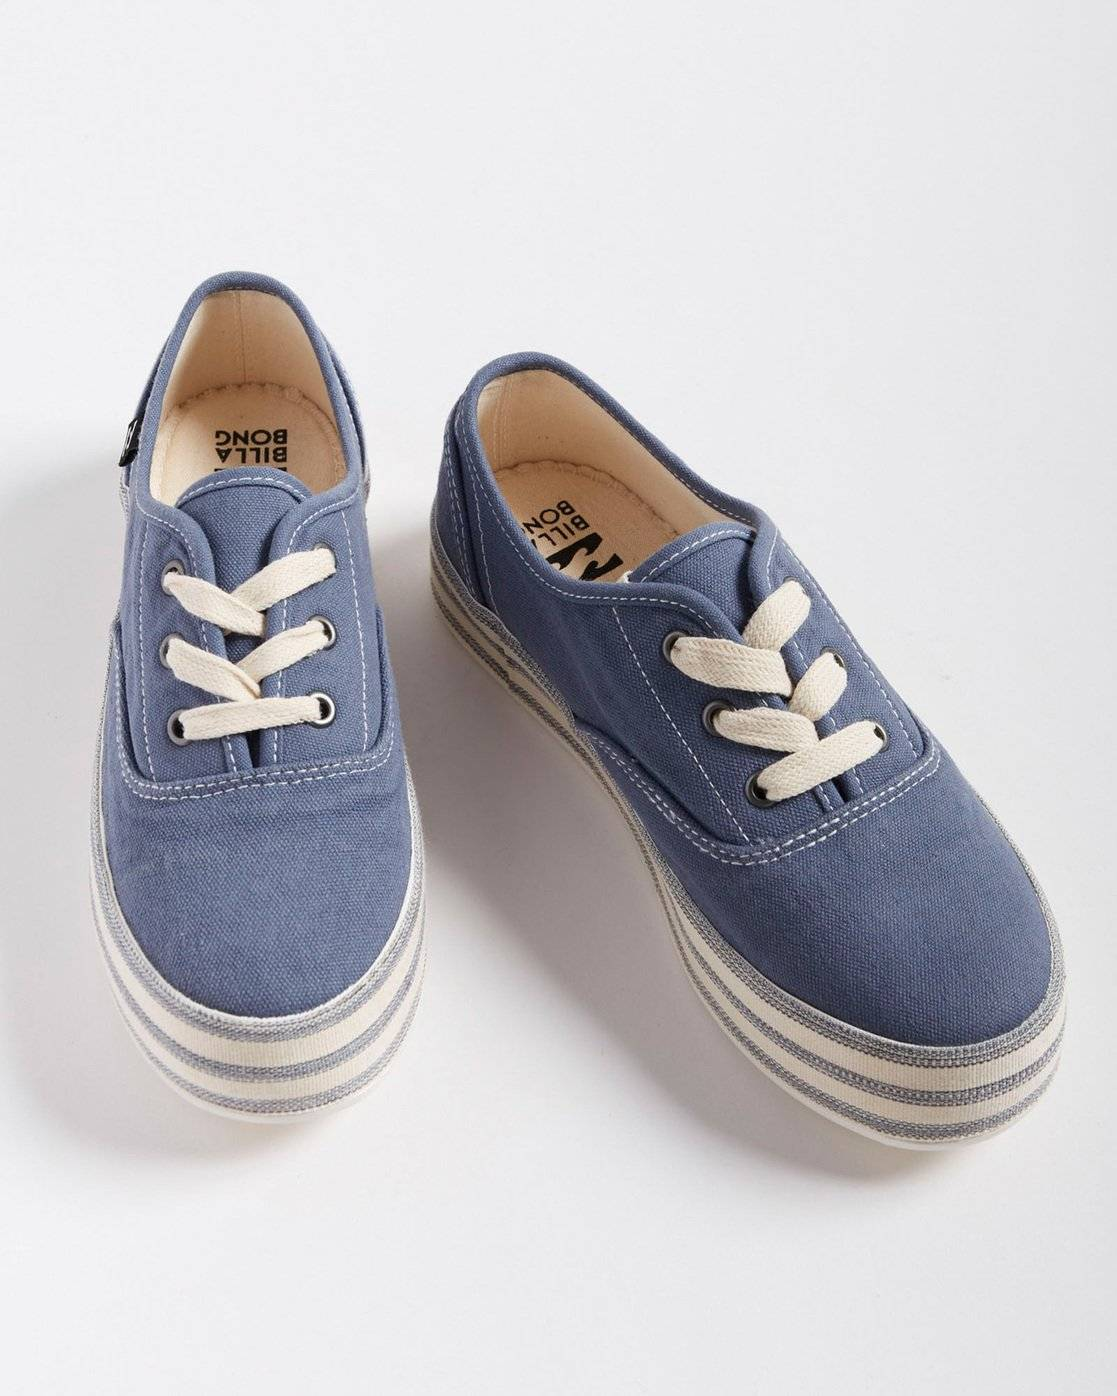 Billabong Spring Tide Shoes  - Blue - Size: 10